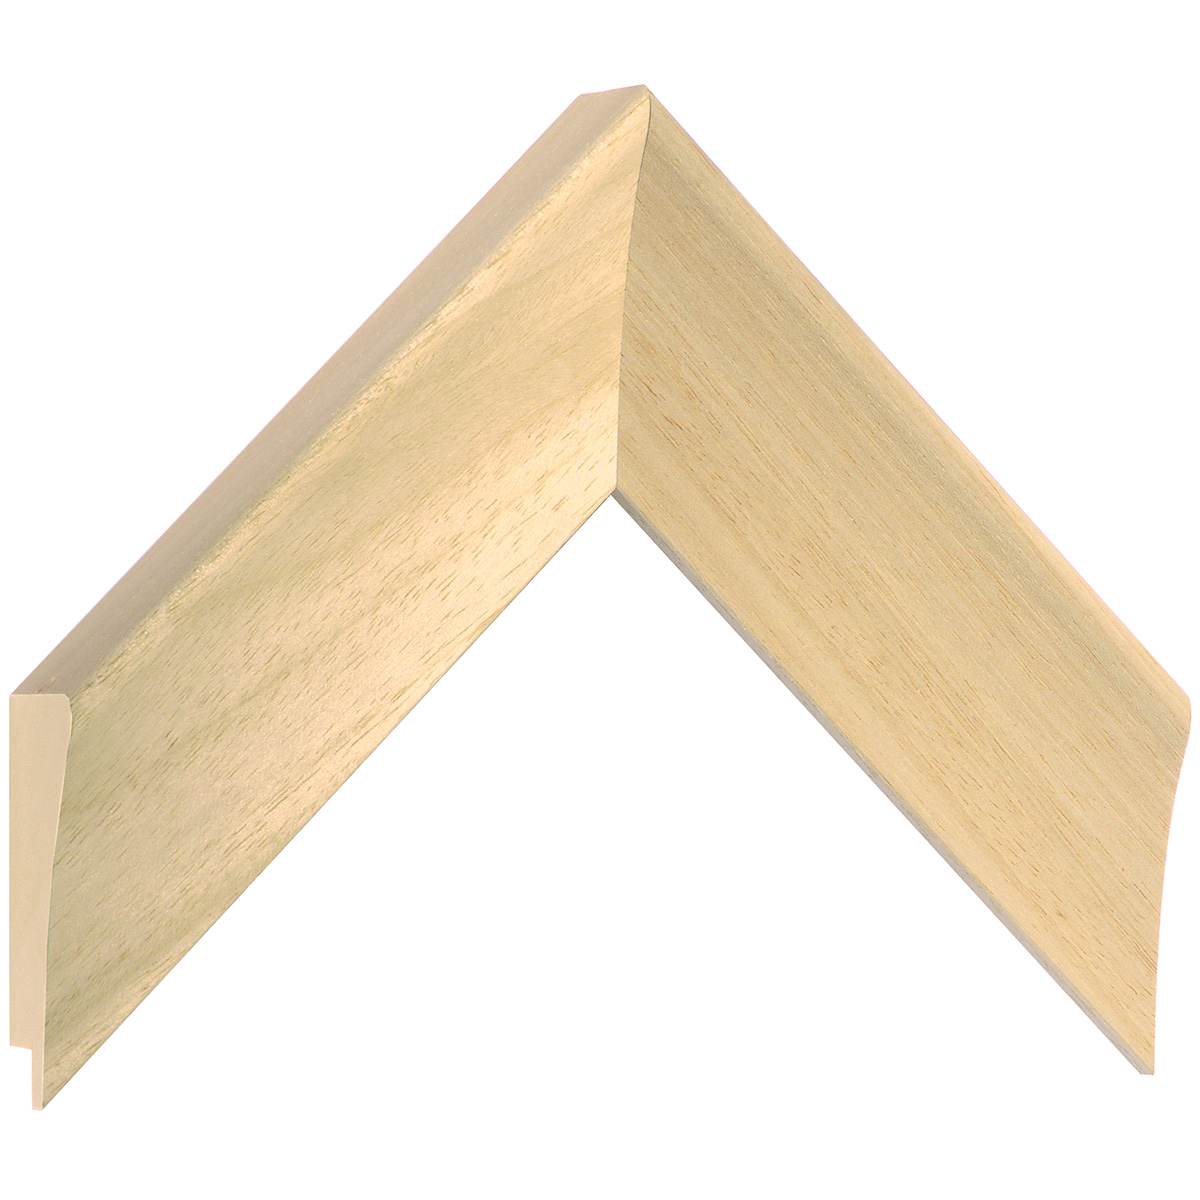 Moulding ayous, width 50mm, height 33mm, bare timber